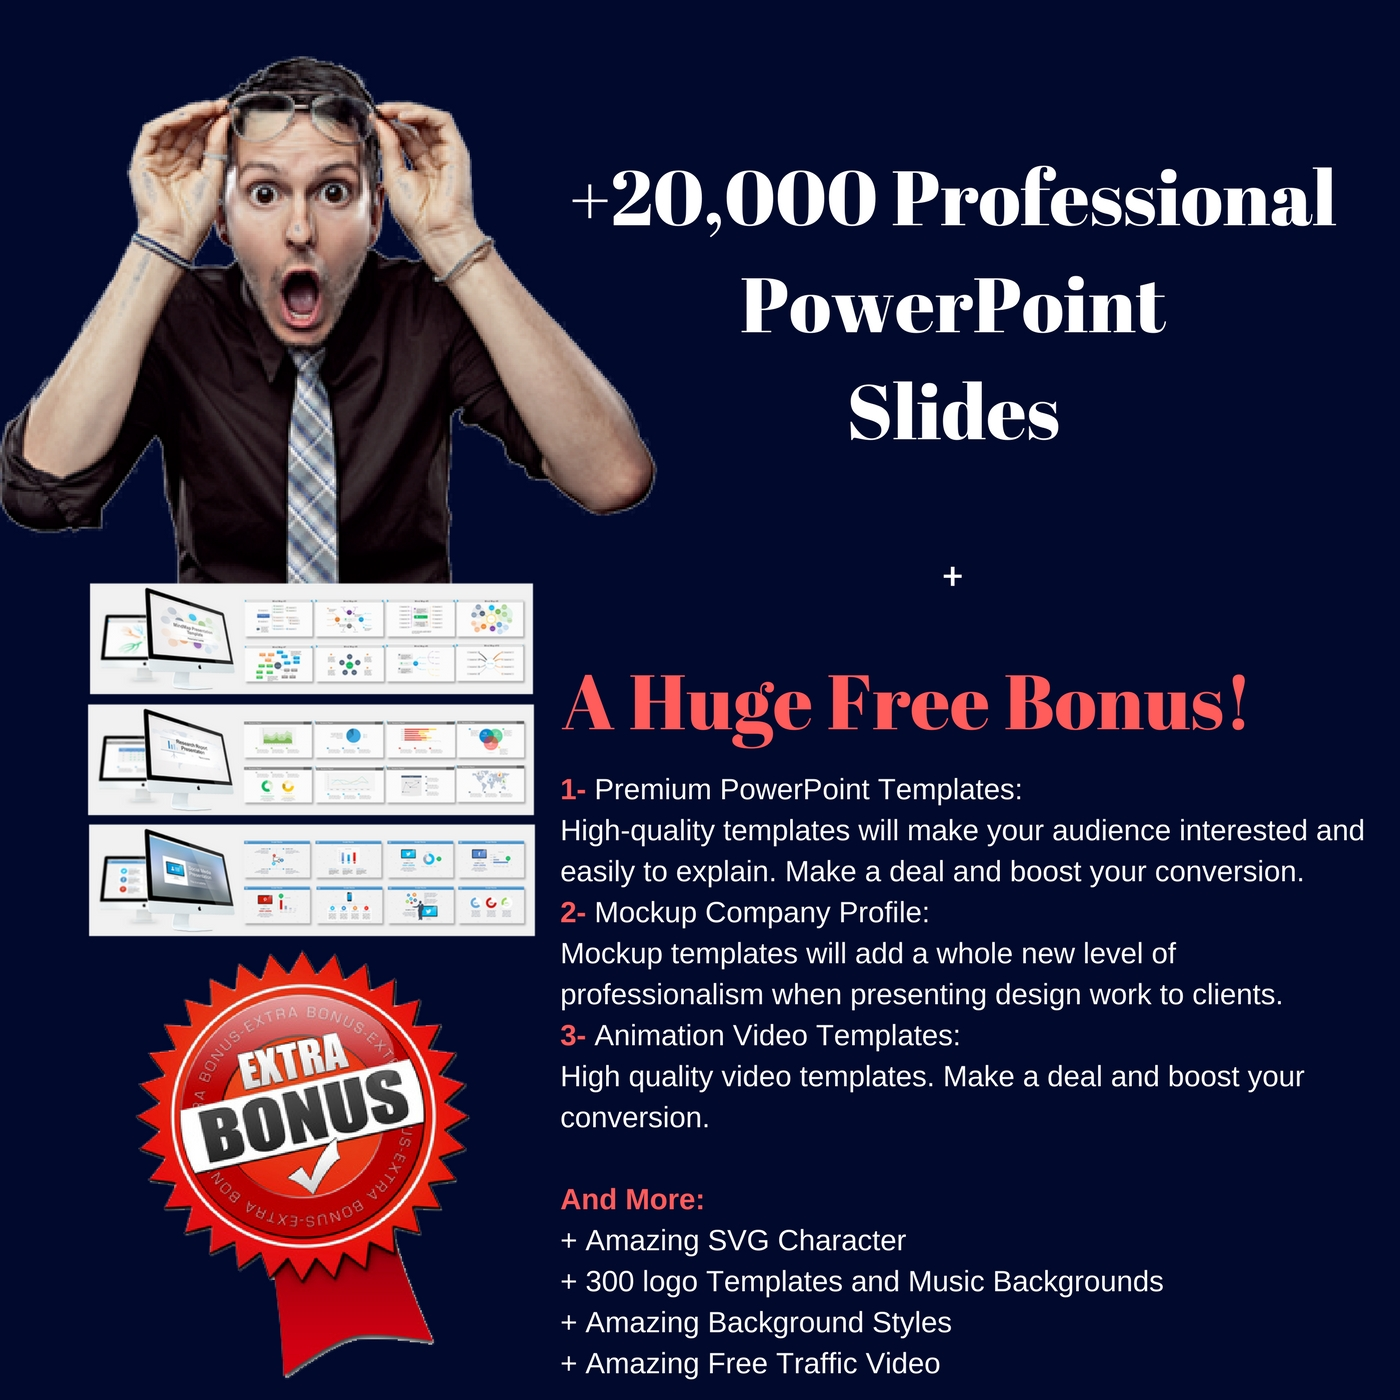 Give 20,000 PowerPoint Slides For Your Presentations